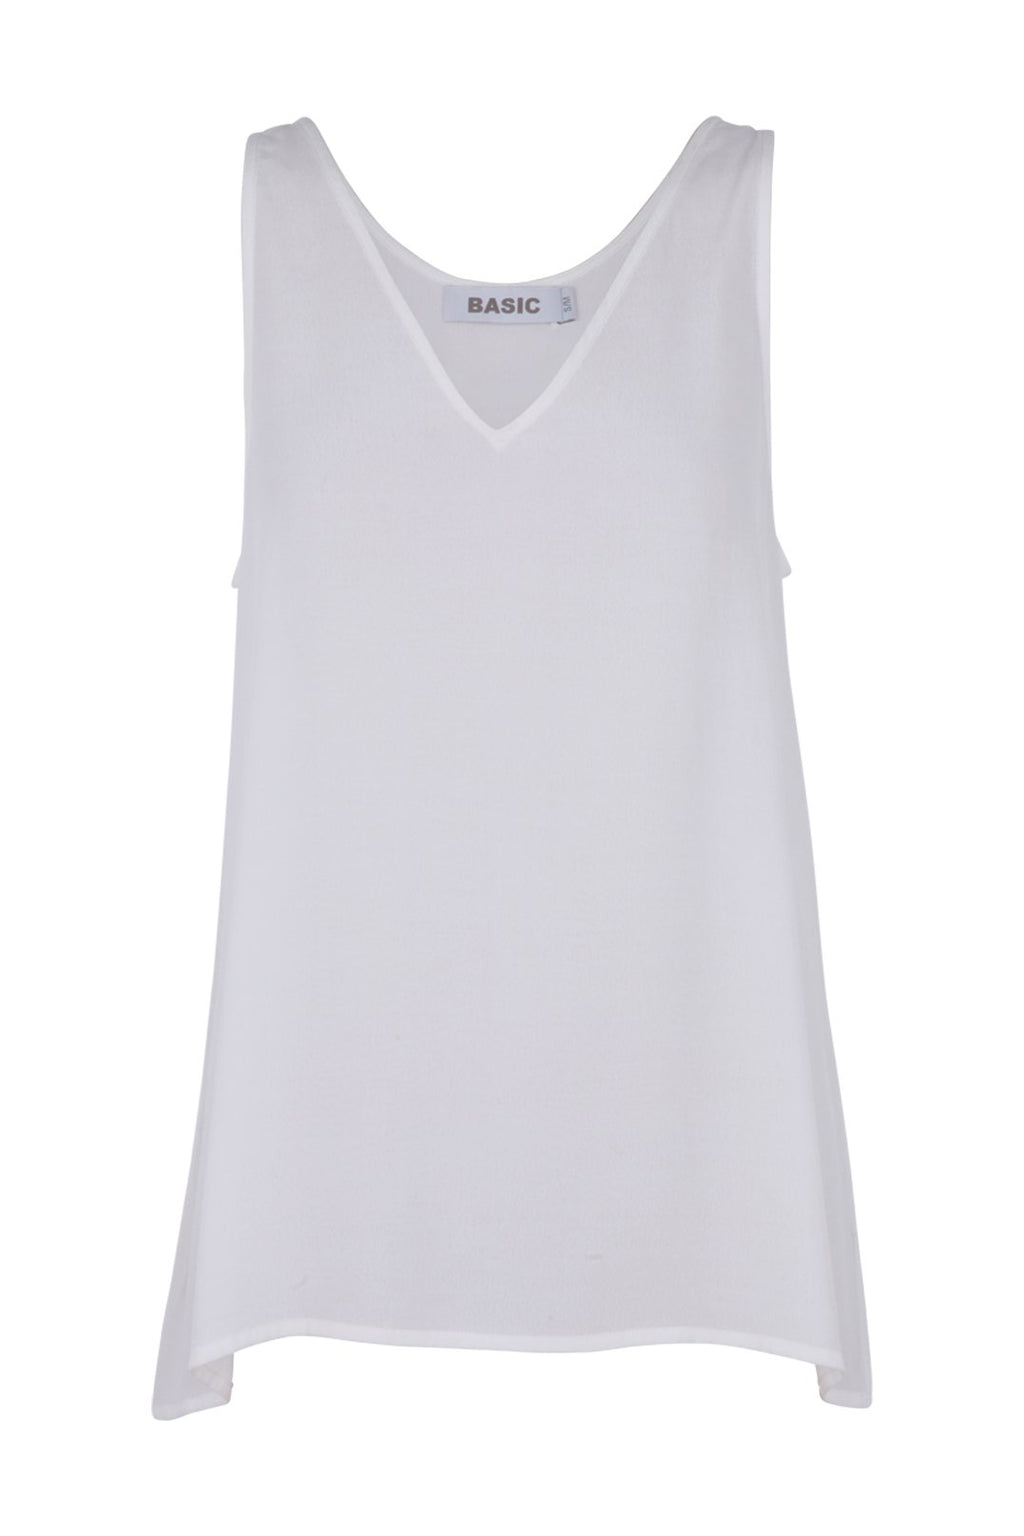 Basic Tank - Ivory - Isle of Mine Clothing - Basic